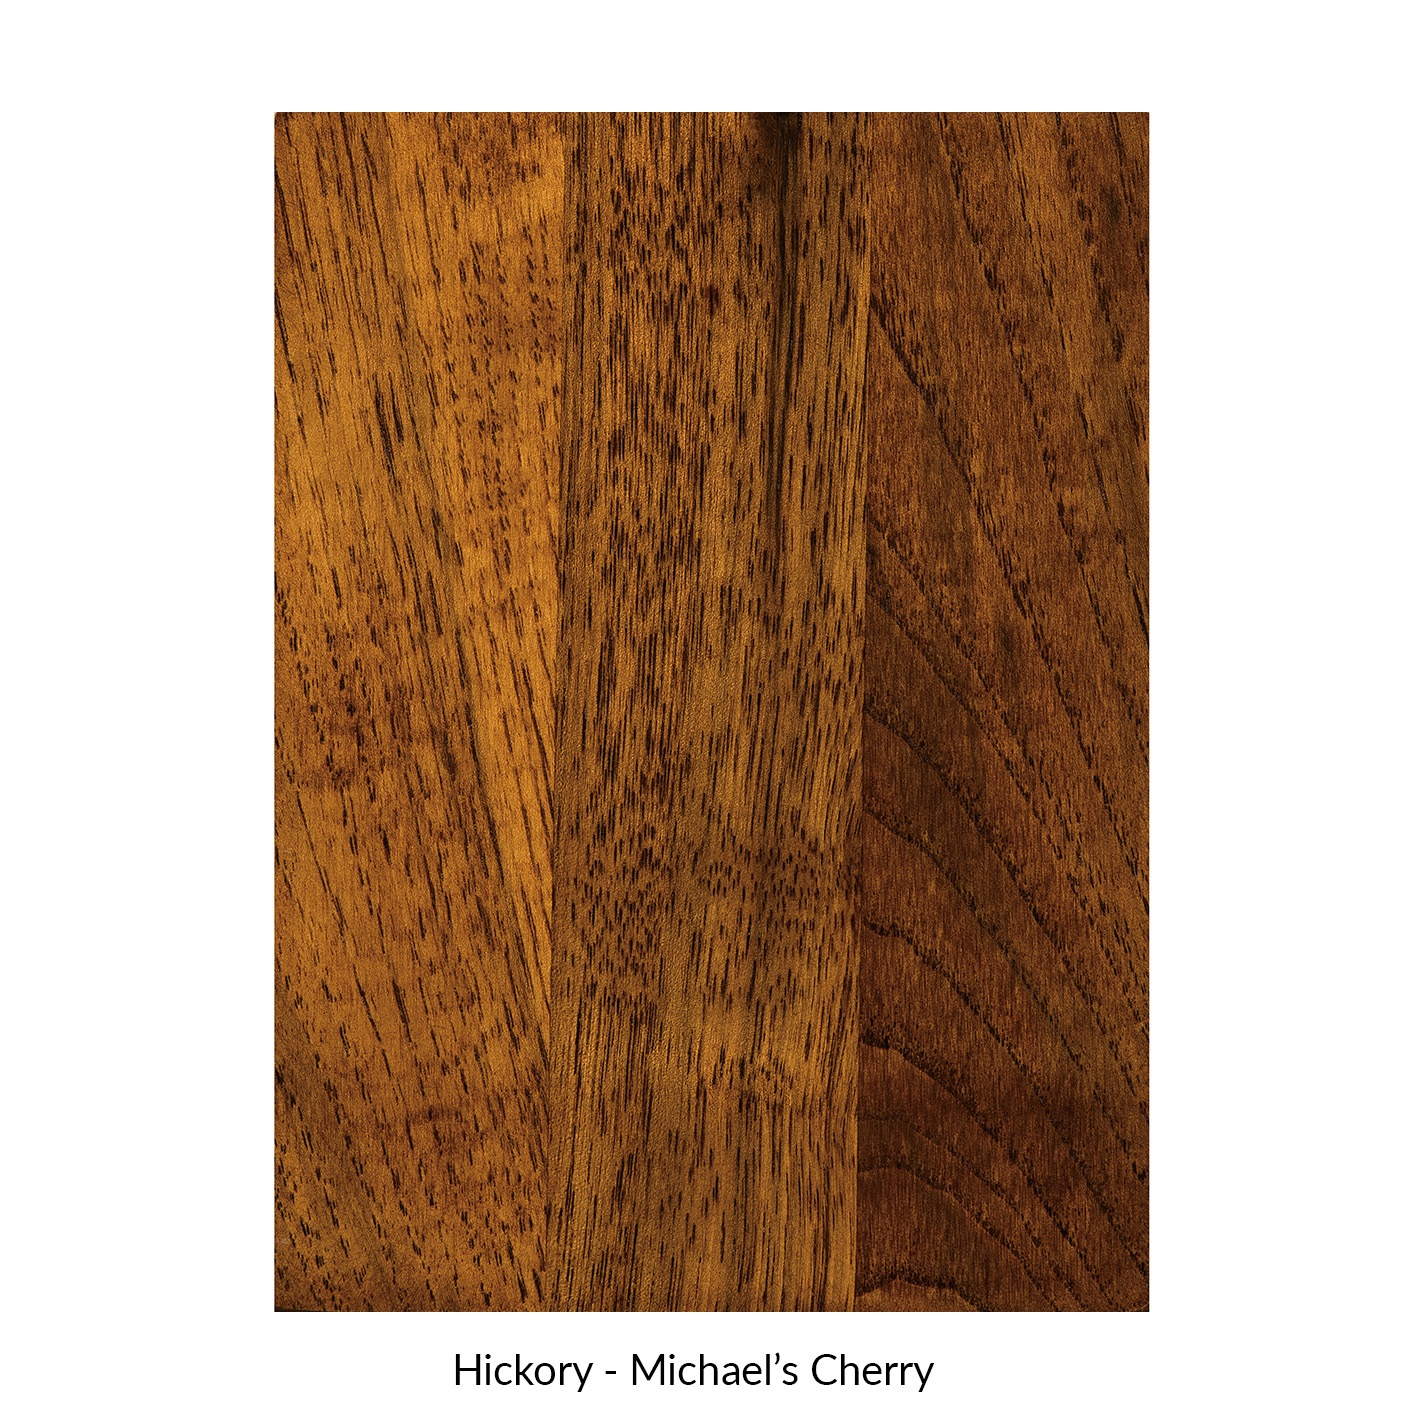 spectrum-hickory-michaels-cherry.jpg